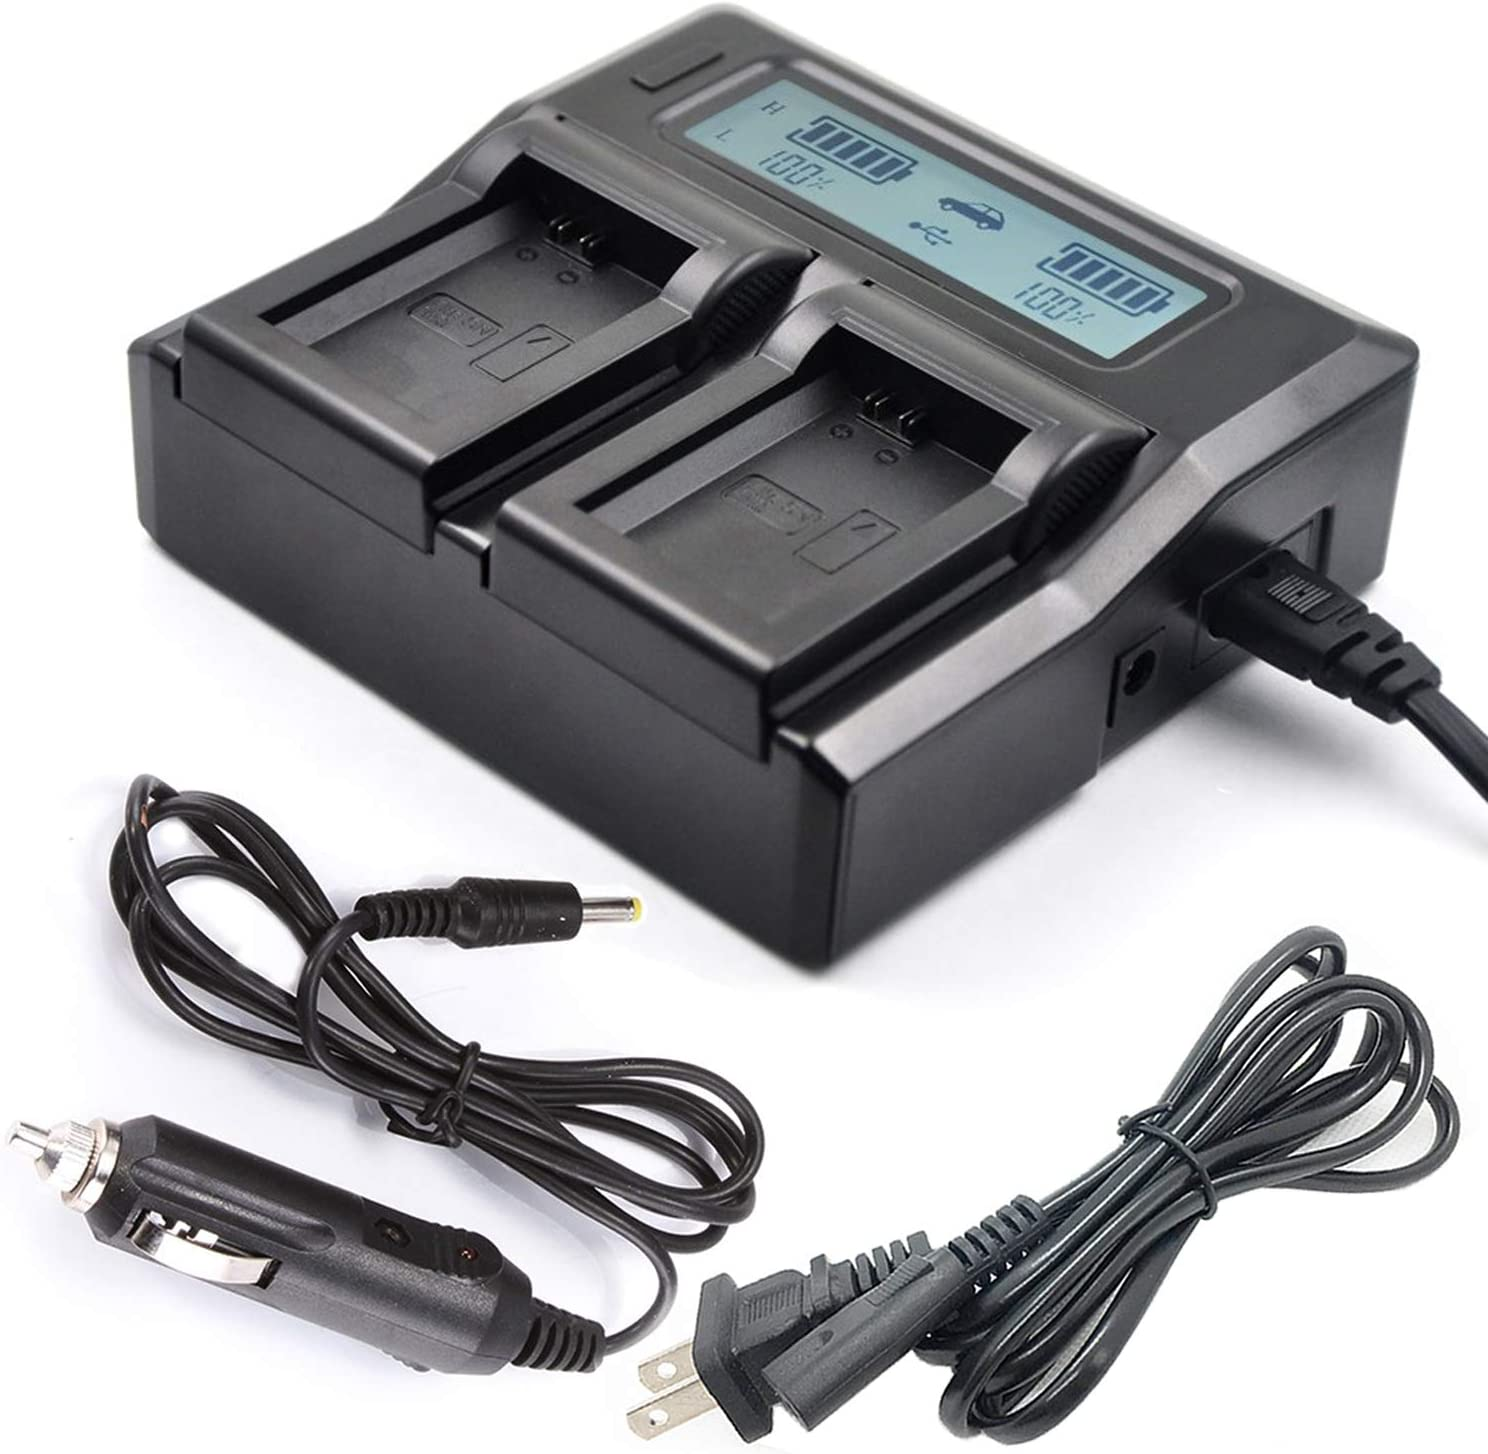 DCR-DVD405 DCR-DVD406 DCR-DVD404 LCD USB Travel Battery Charger for Sony DCR-DVD403 DCR-DVD408 Handycam Camcorder